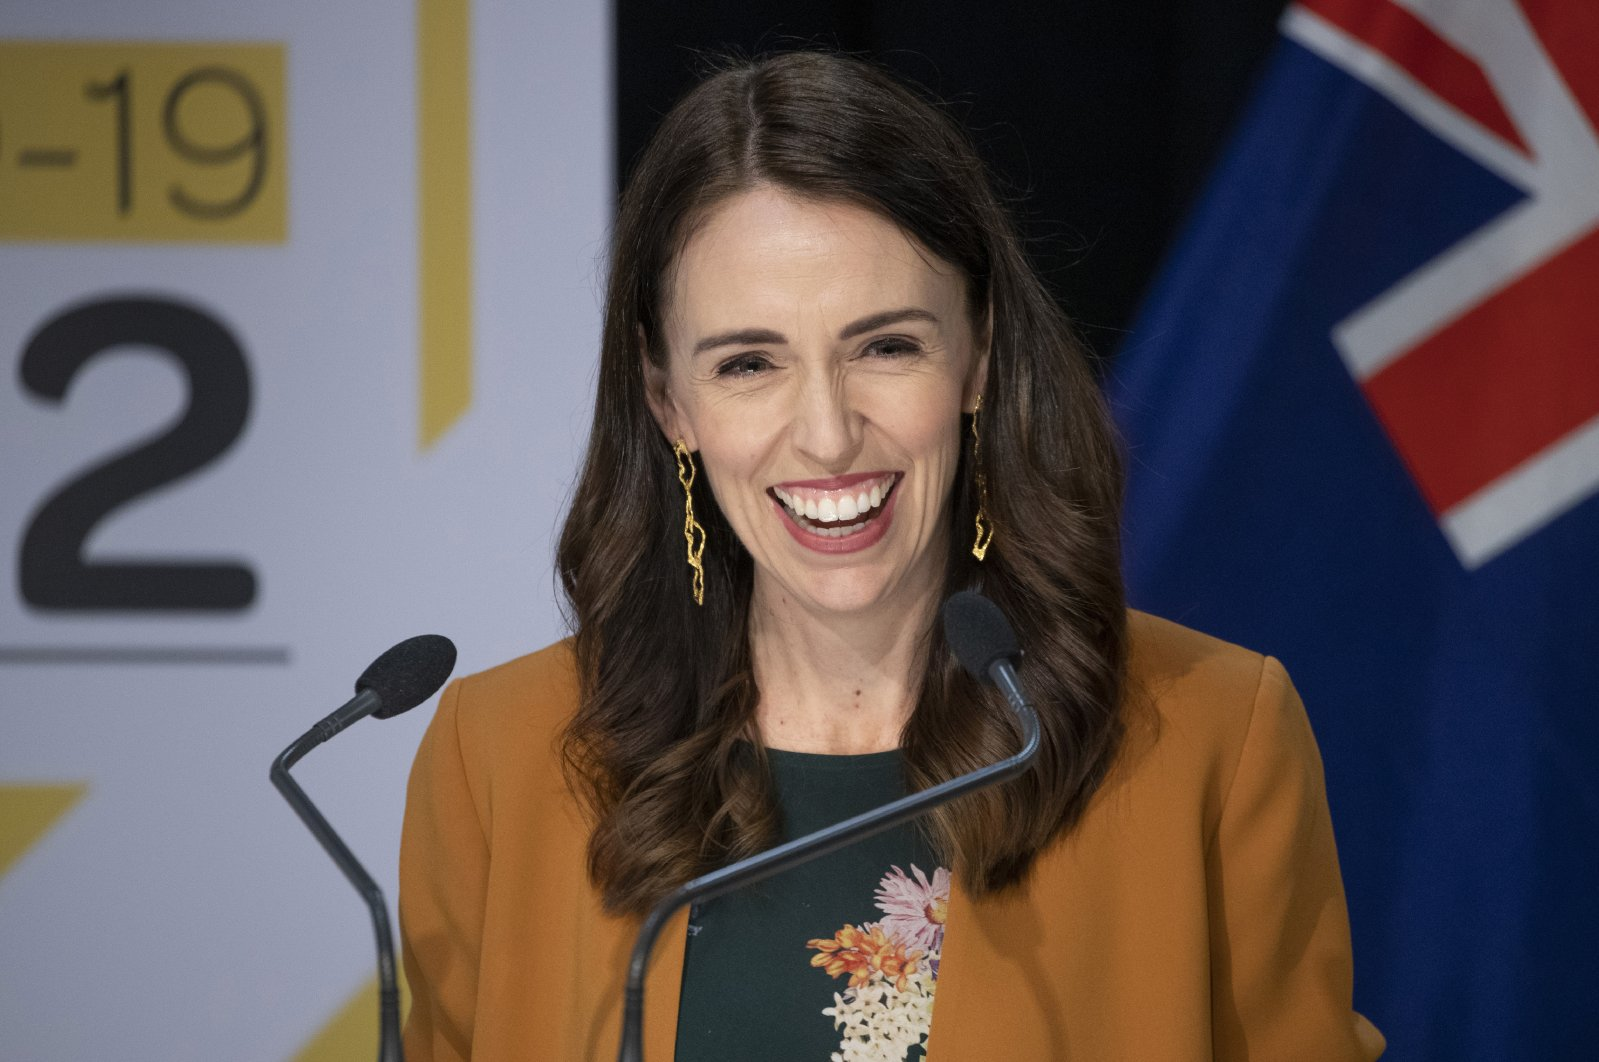 New Zealand Prime Minister Jacinda Ardern smiles as she addresses a press conference where she announced New Zealand will drop to COVID-19 alert level 1 at midnight in Wellington, New Zealand, Monday, June 8, 2020 (Mark Mitchell/New Zealand Herald via AP)